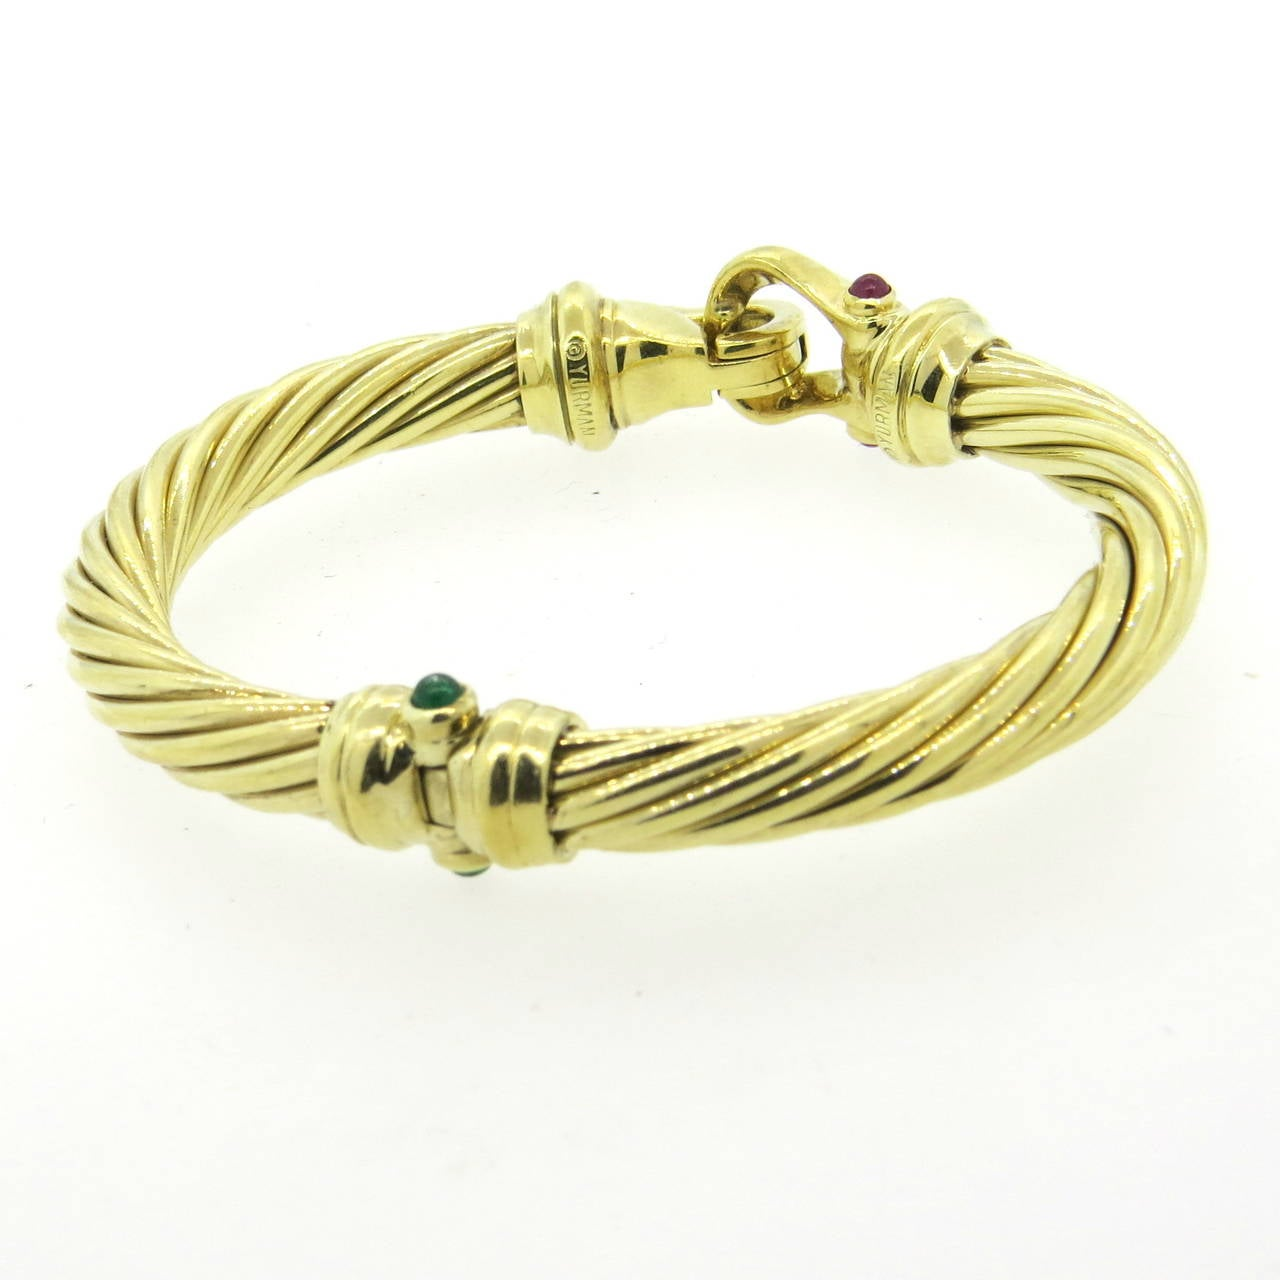 David Yurman Emerald Ruby Gold Cable Buckle Bangle Bracelet In Excellent Condition For Lahaska